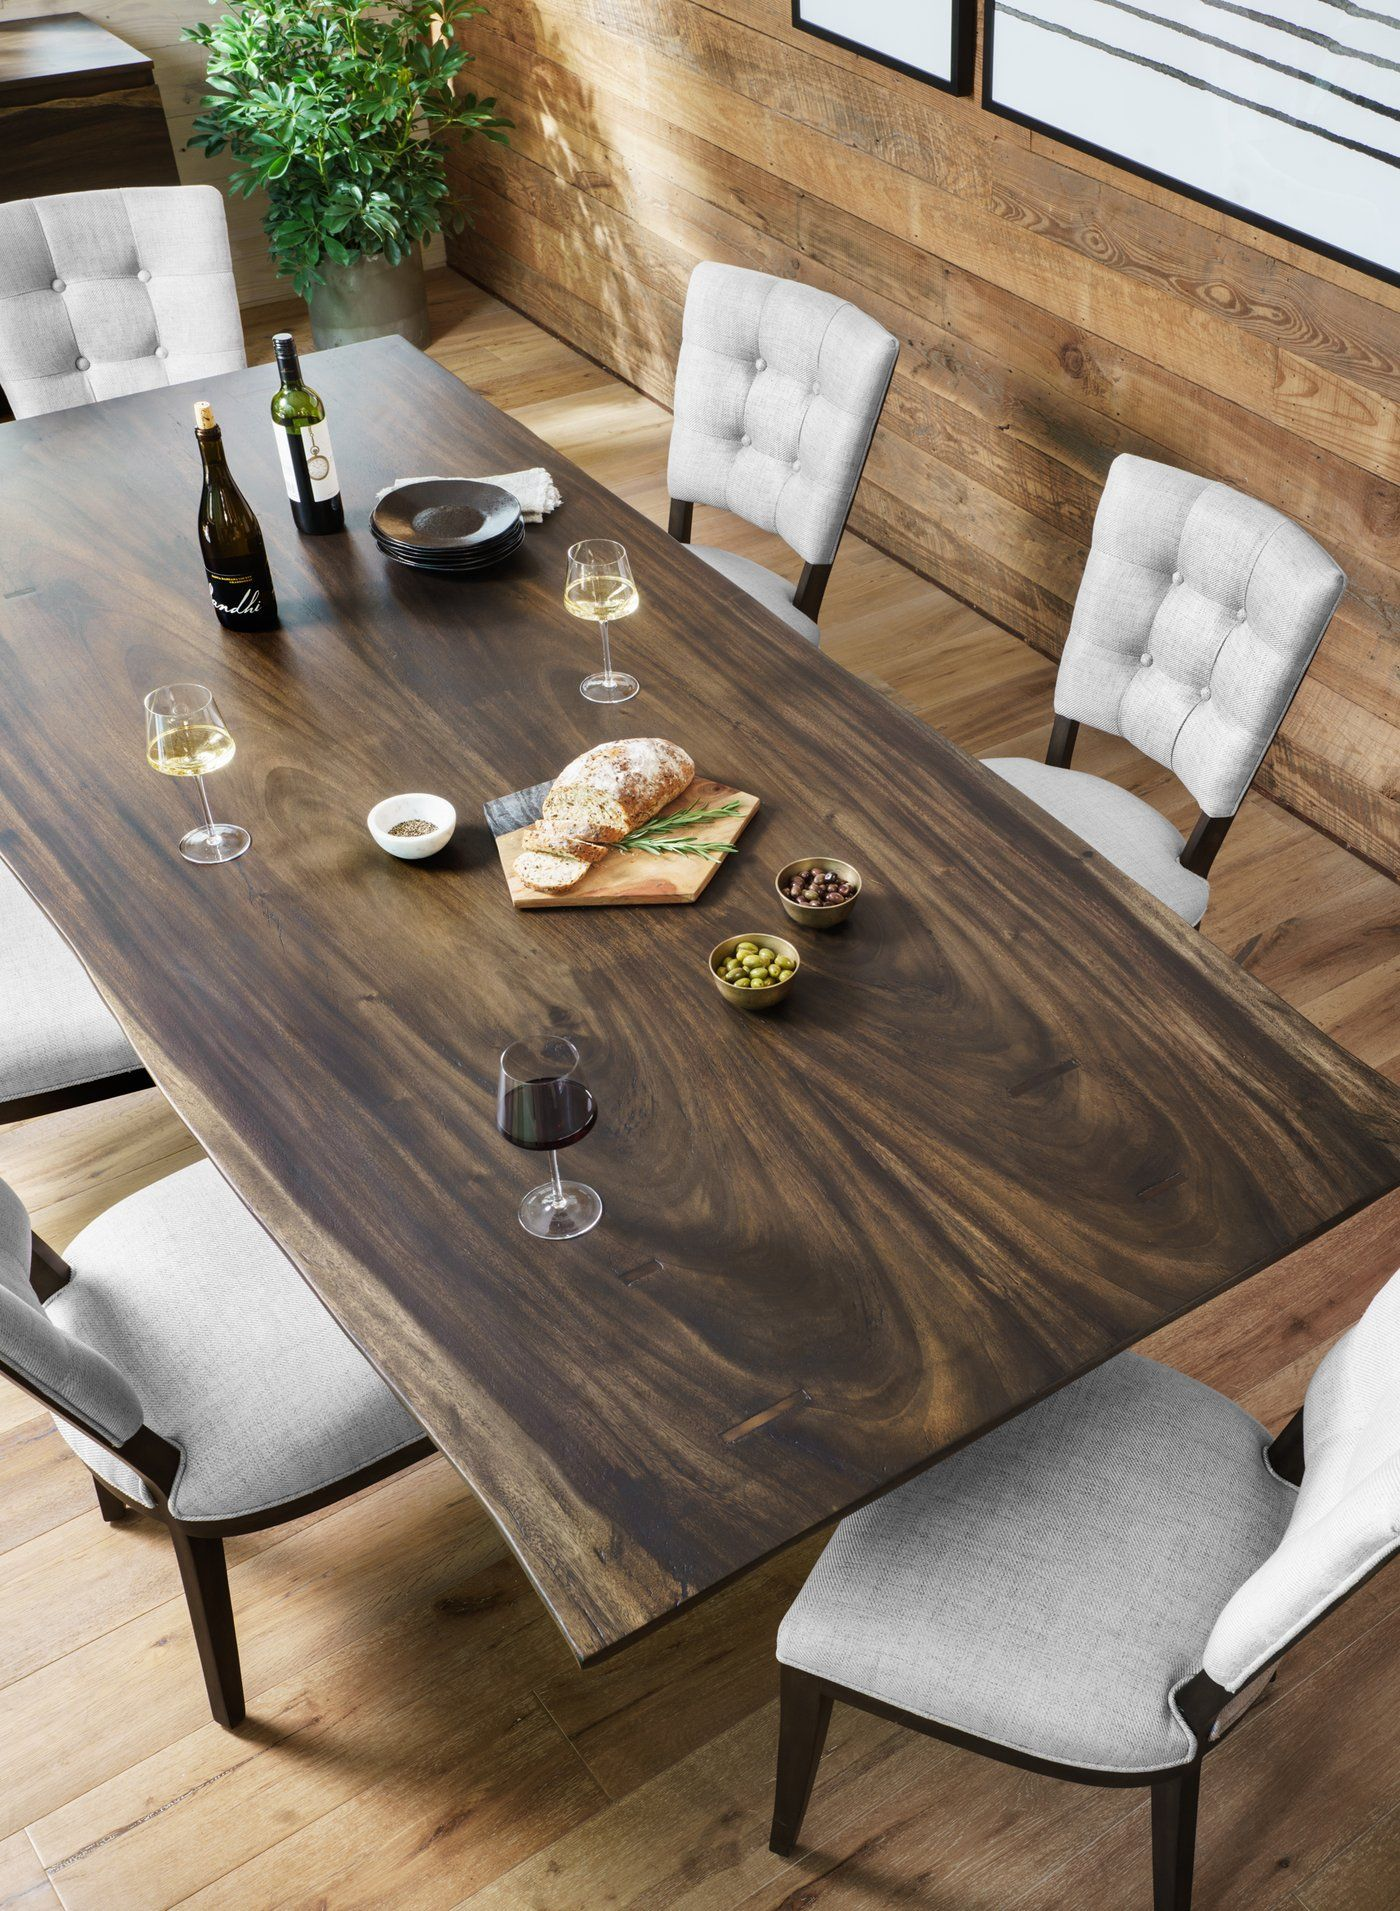 The Rocky Dining Table From Four Hands Features A Modern X Base Of